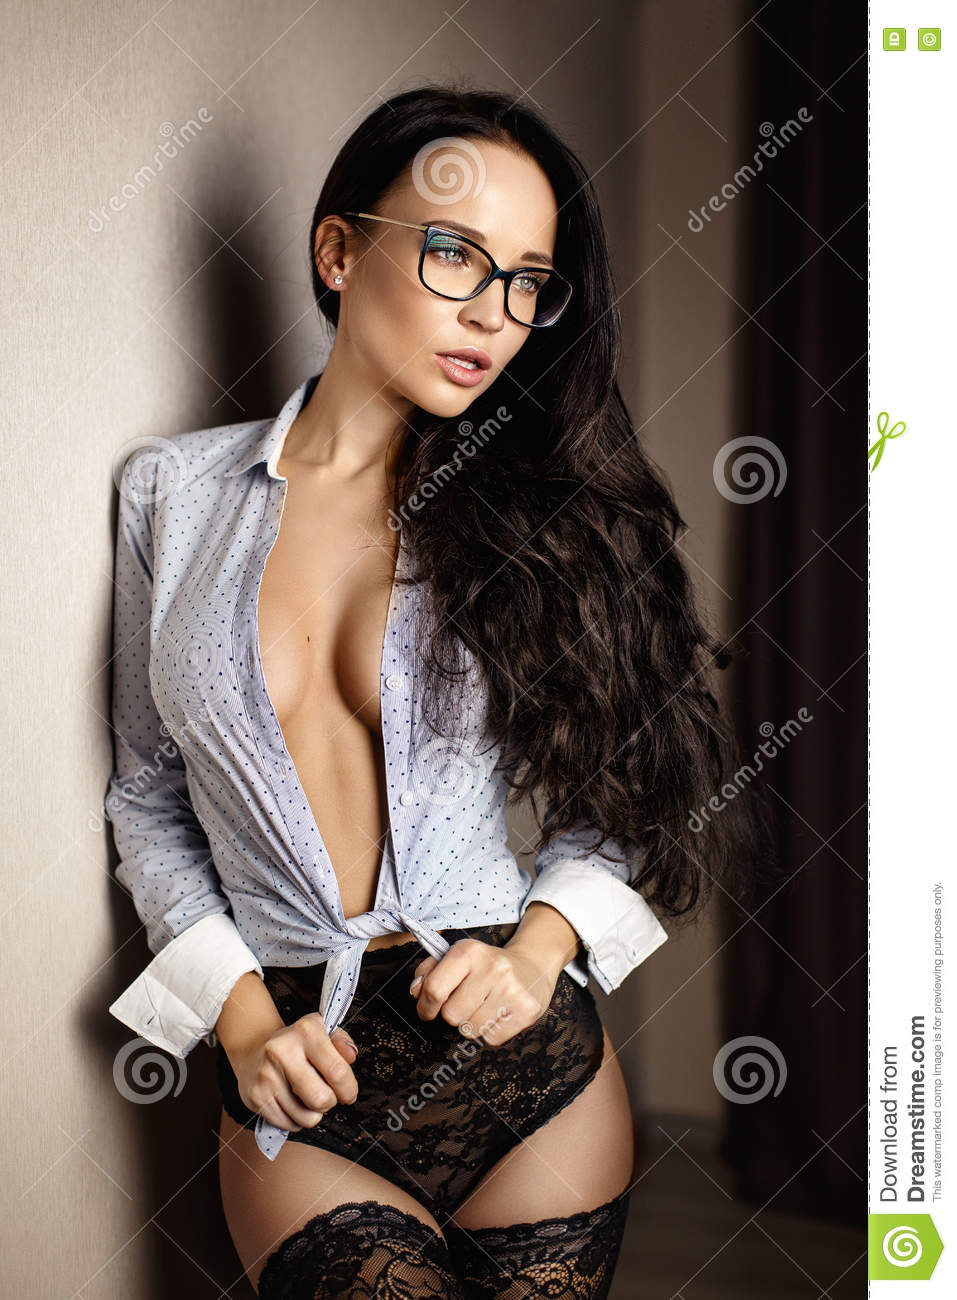 Seductive secretary girl in a glasses